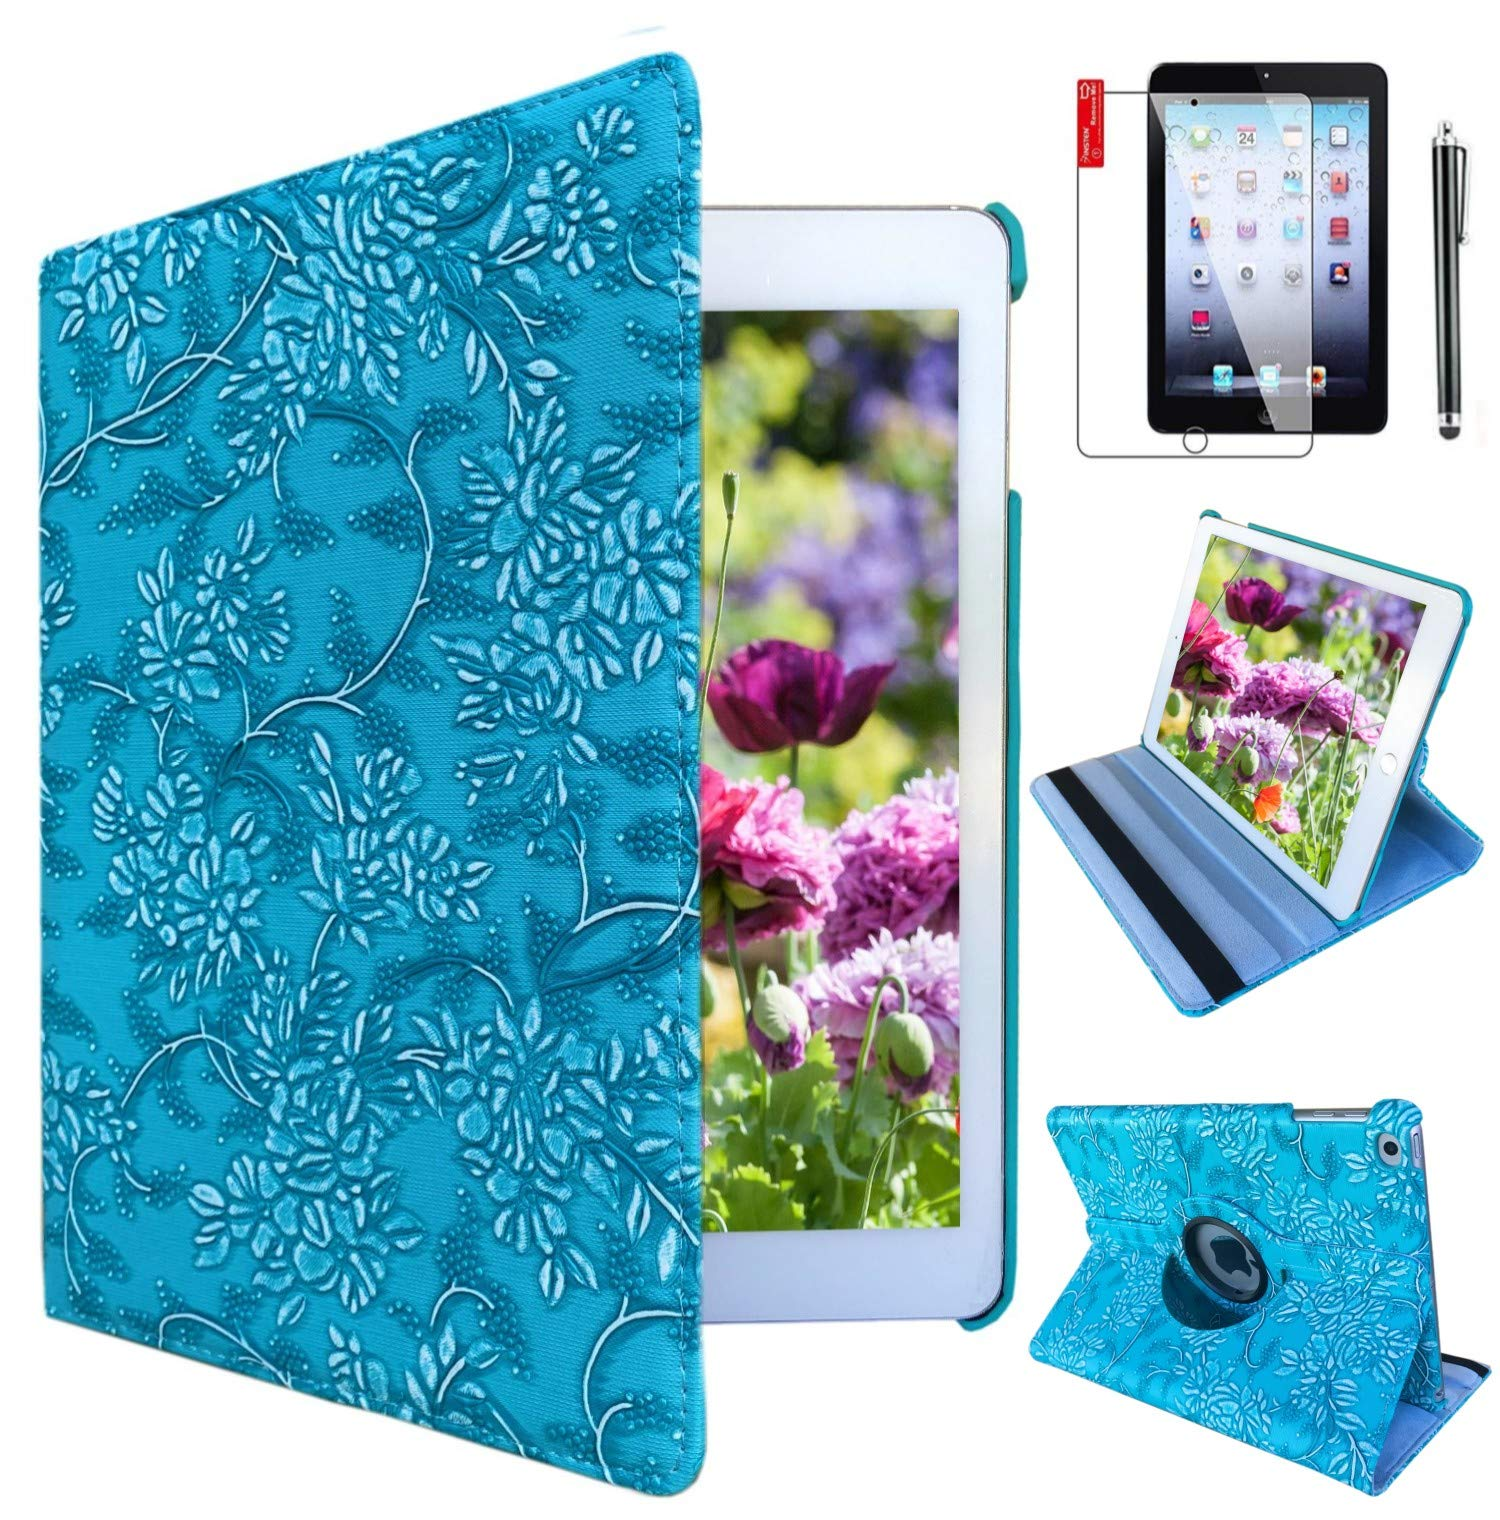 iPad Air 1st Generation case Compatible Models A1474 A1475A1476 MD785LL/A MD876LL/A 360 Rotating Stand with Wake Up/Sleep Function (Blue Embossed Flowers)